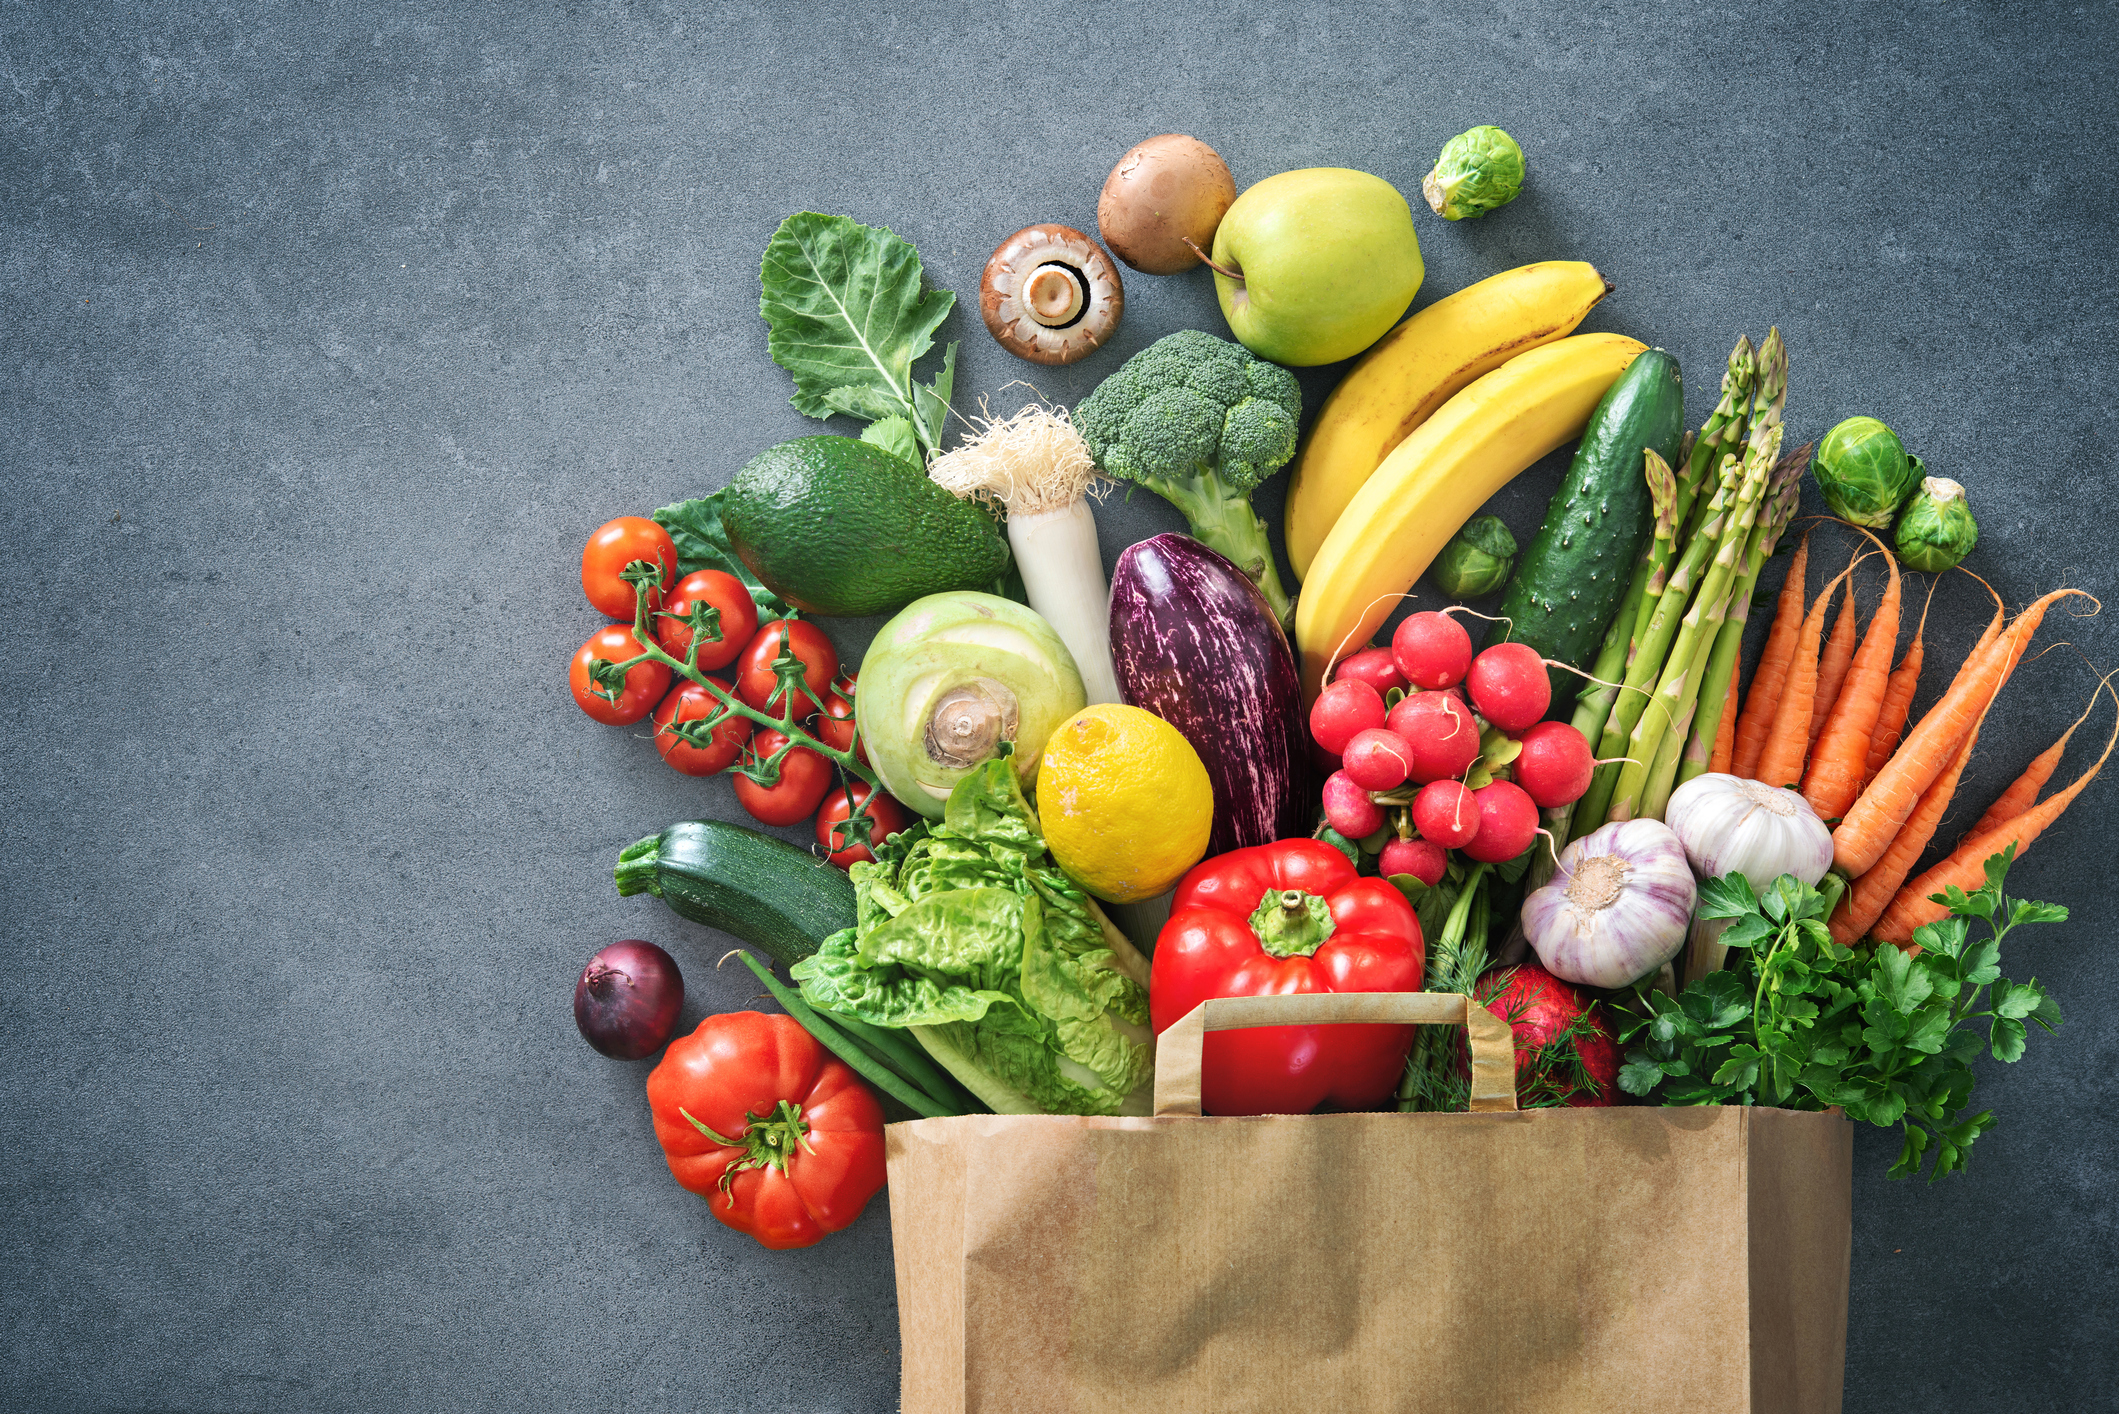 Healthy food selection. Shopping bag full of fresh vegetables and fruits. Image credit: iStock